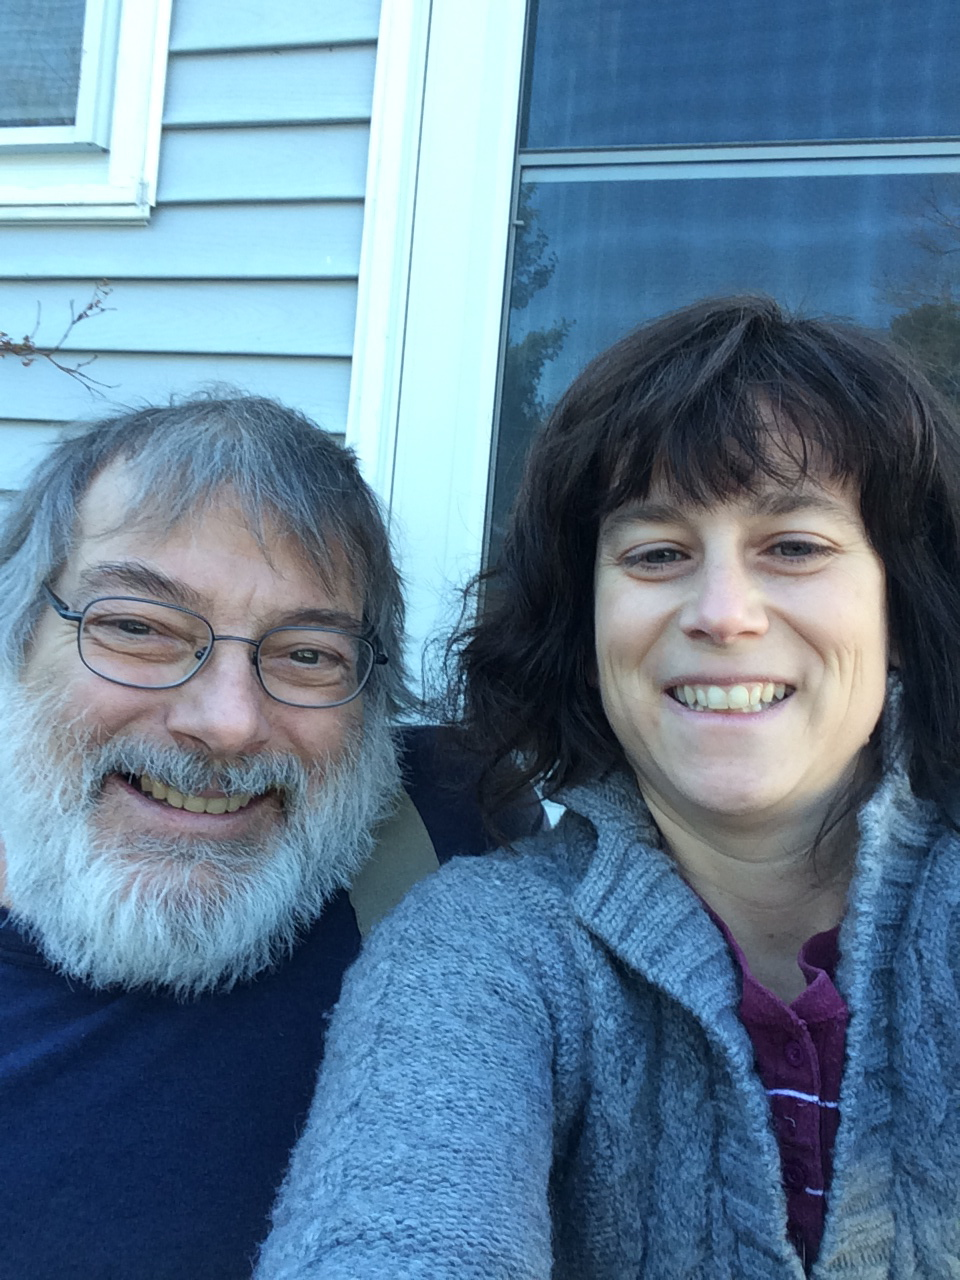 Annalisa Parent and Rene Kirby, two of the co-writers of Plymouth Rock, hanging out in Vermont